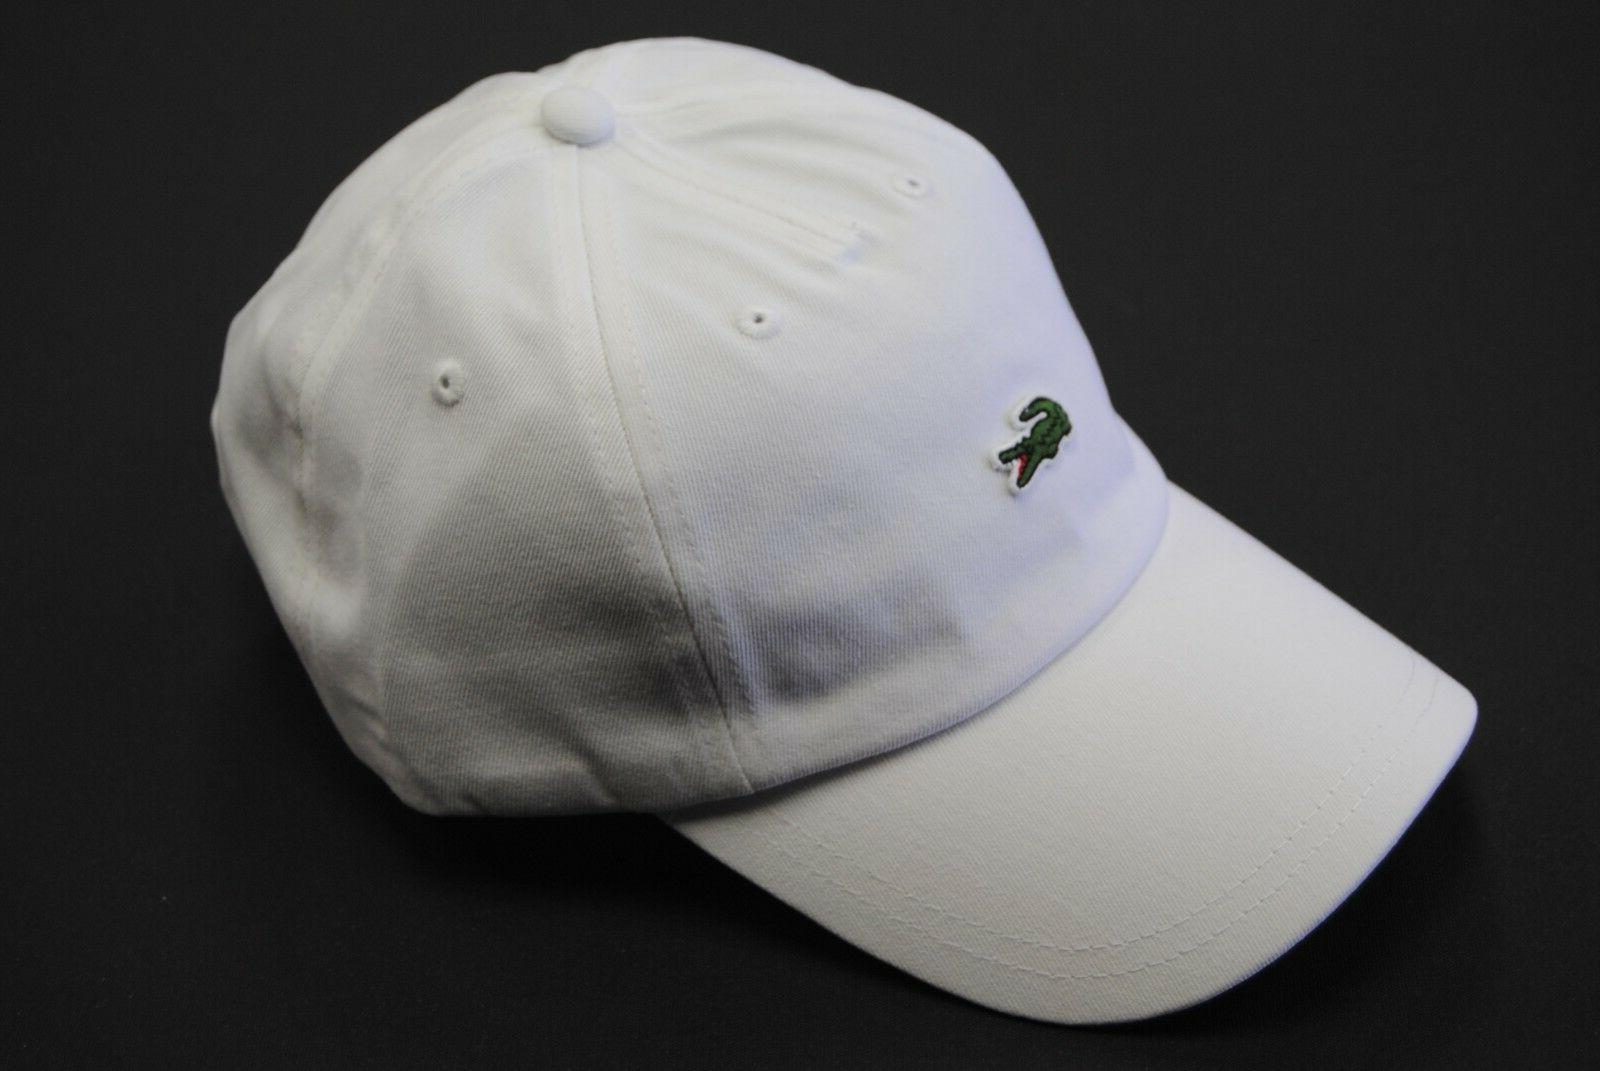 NEW SMALL STRAPBACK CAP DAD HAT ADJUSTABLE